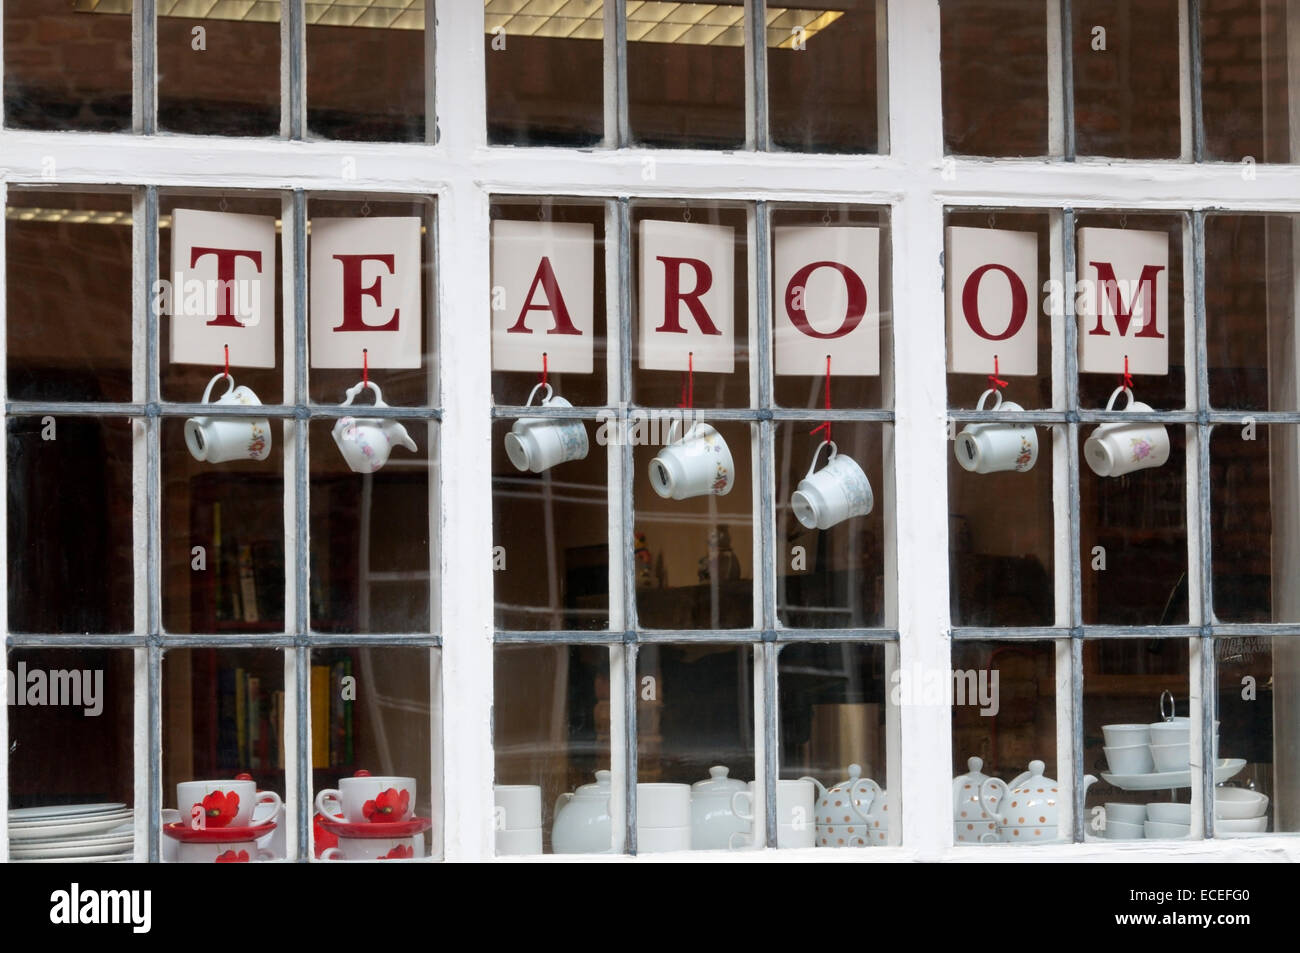 Cups and sign hanging in the window of a tearoom in King's Lynn, Norfolk. - Stock Image